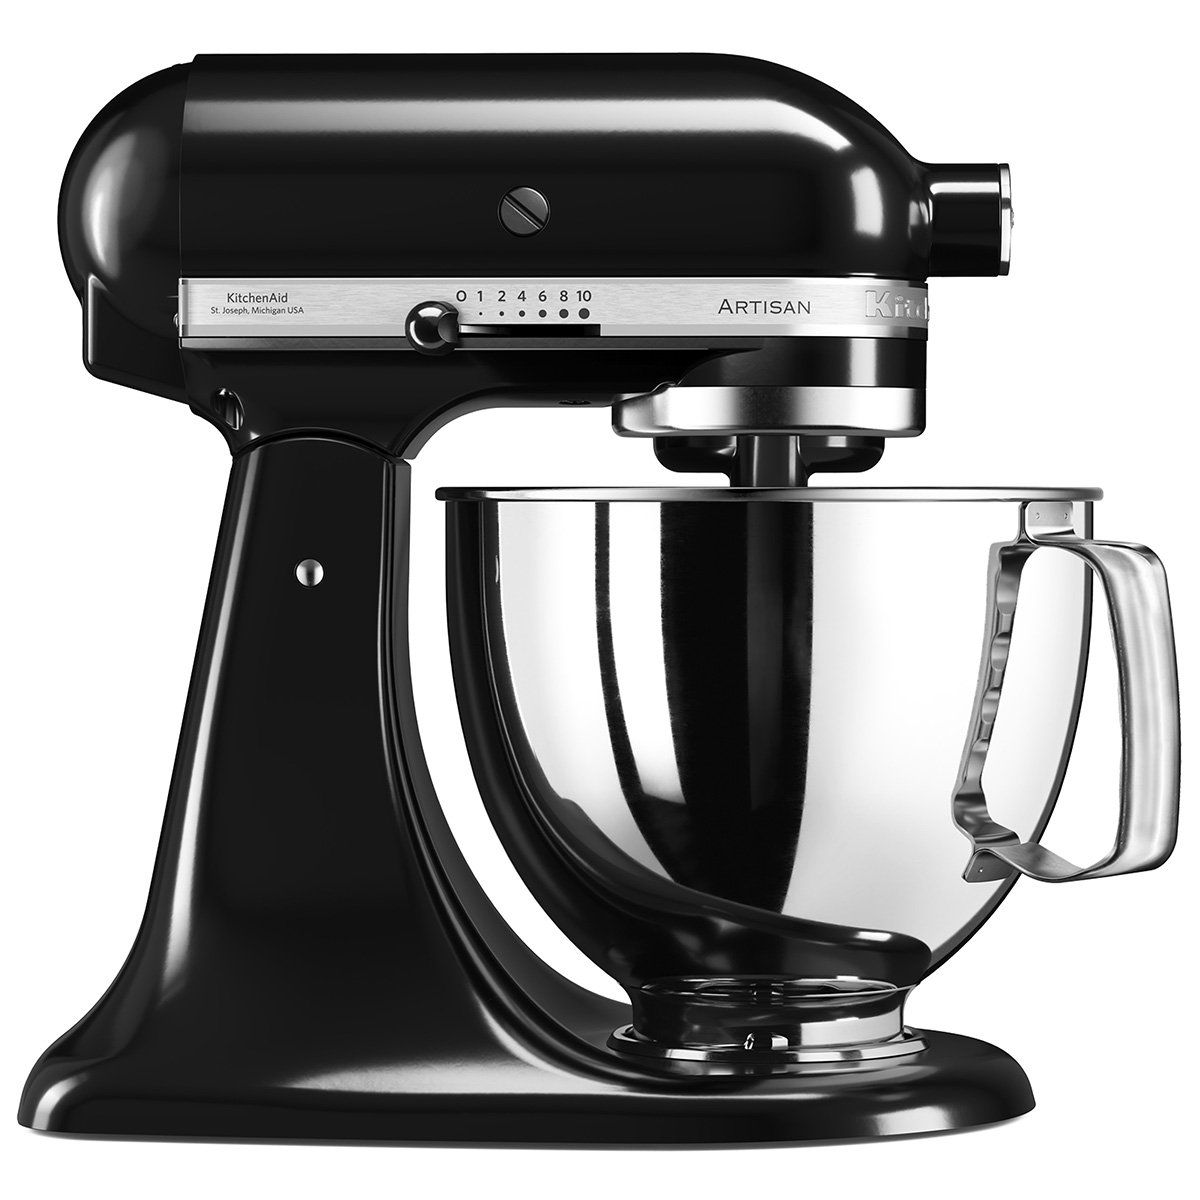 KitchenAid køkkenmaskine - Artisan - Sort